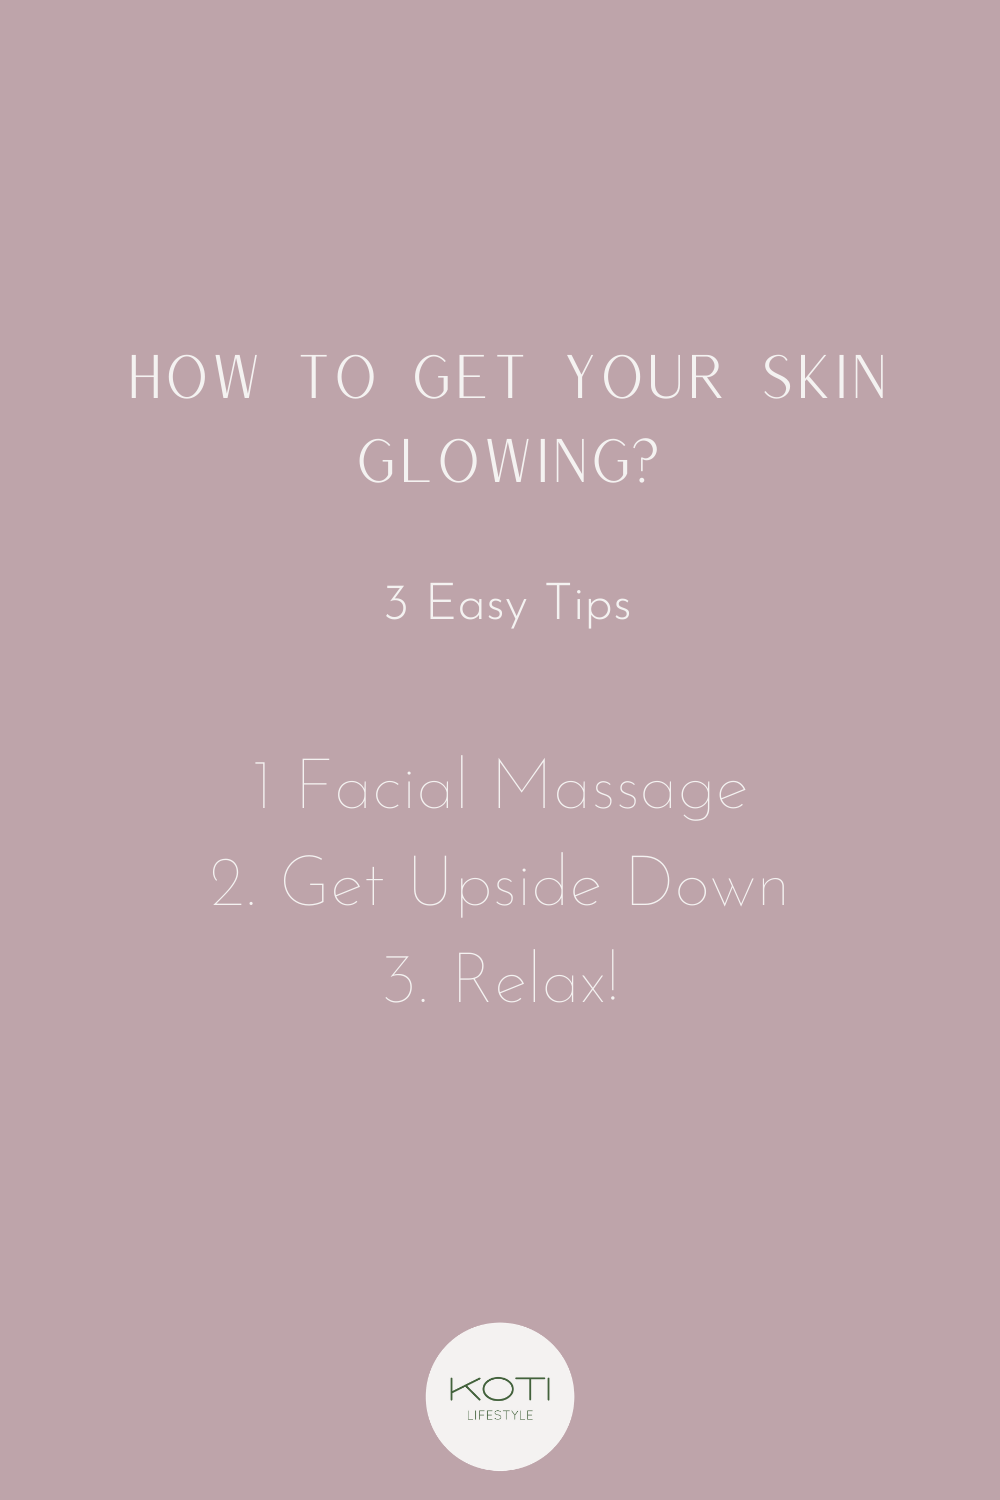 Koti Lifestyle | How to get glowing skin tips